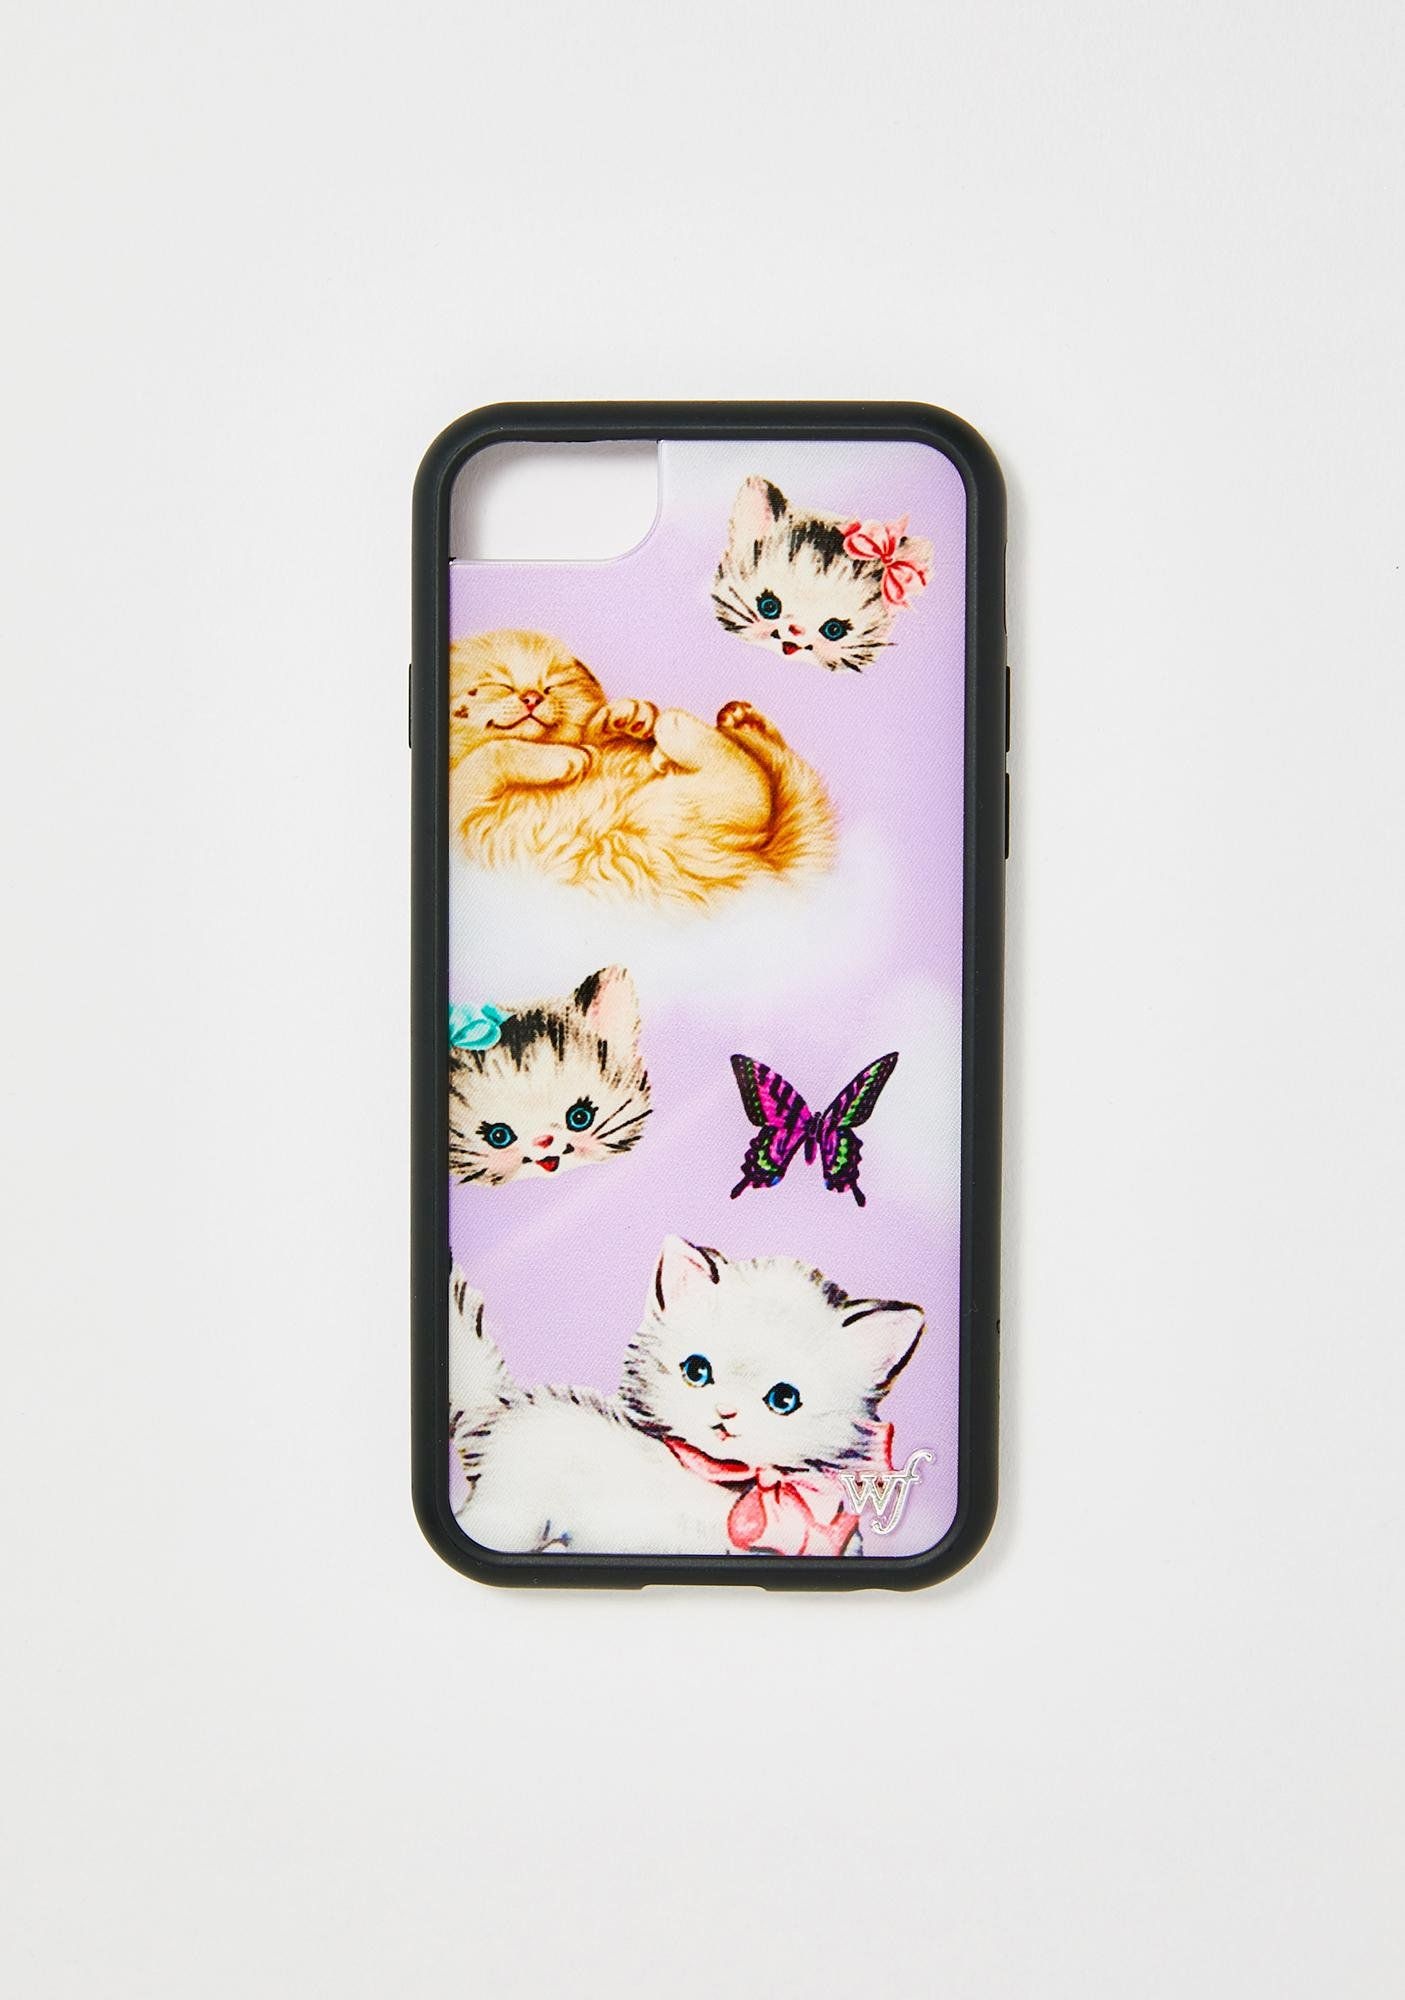 Kittens Iphone Case Kitten Phone Cases Cats Phone Case Iphone Cases